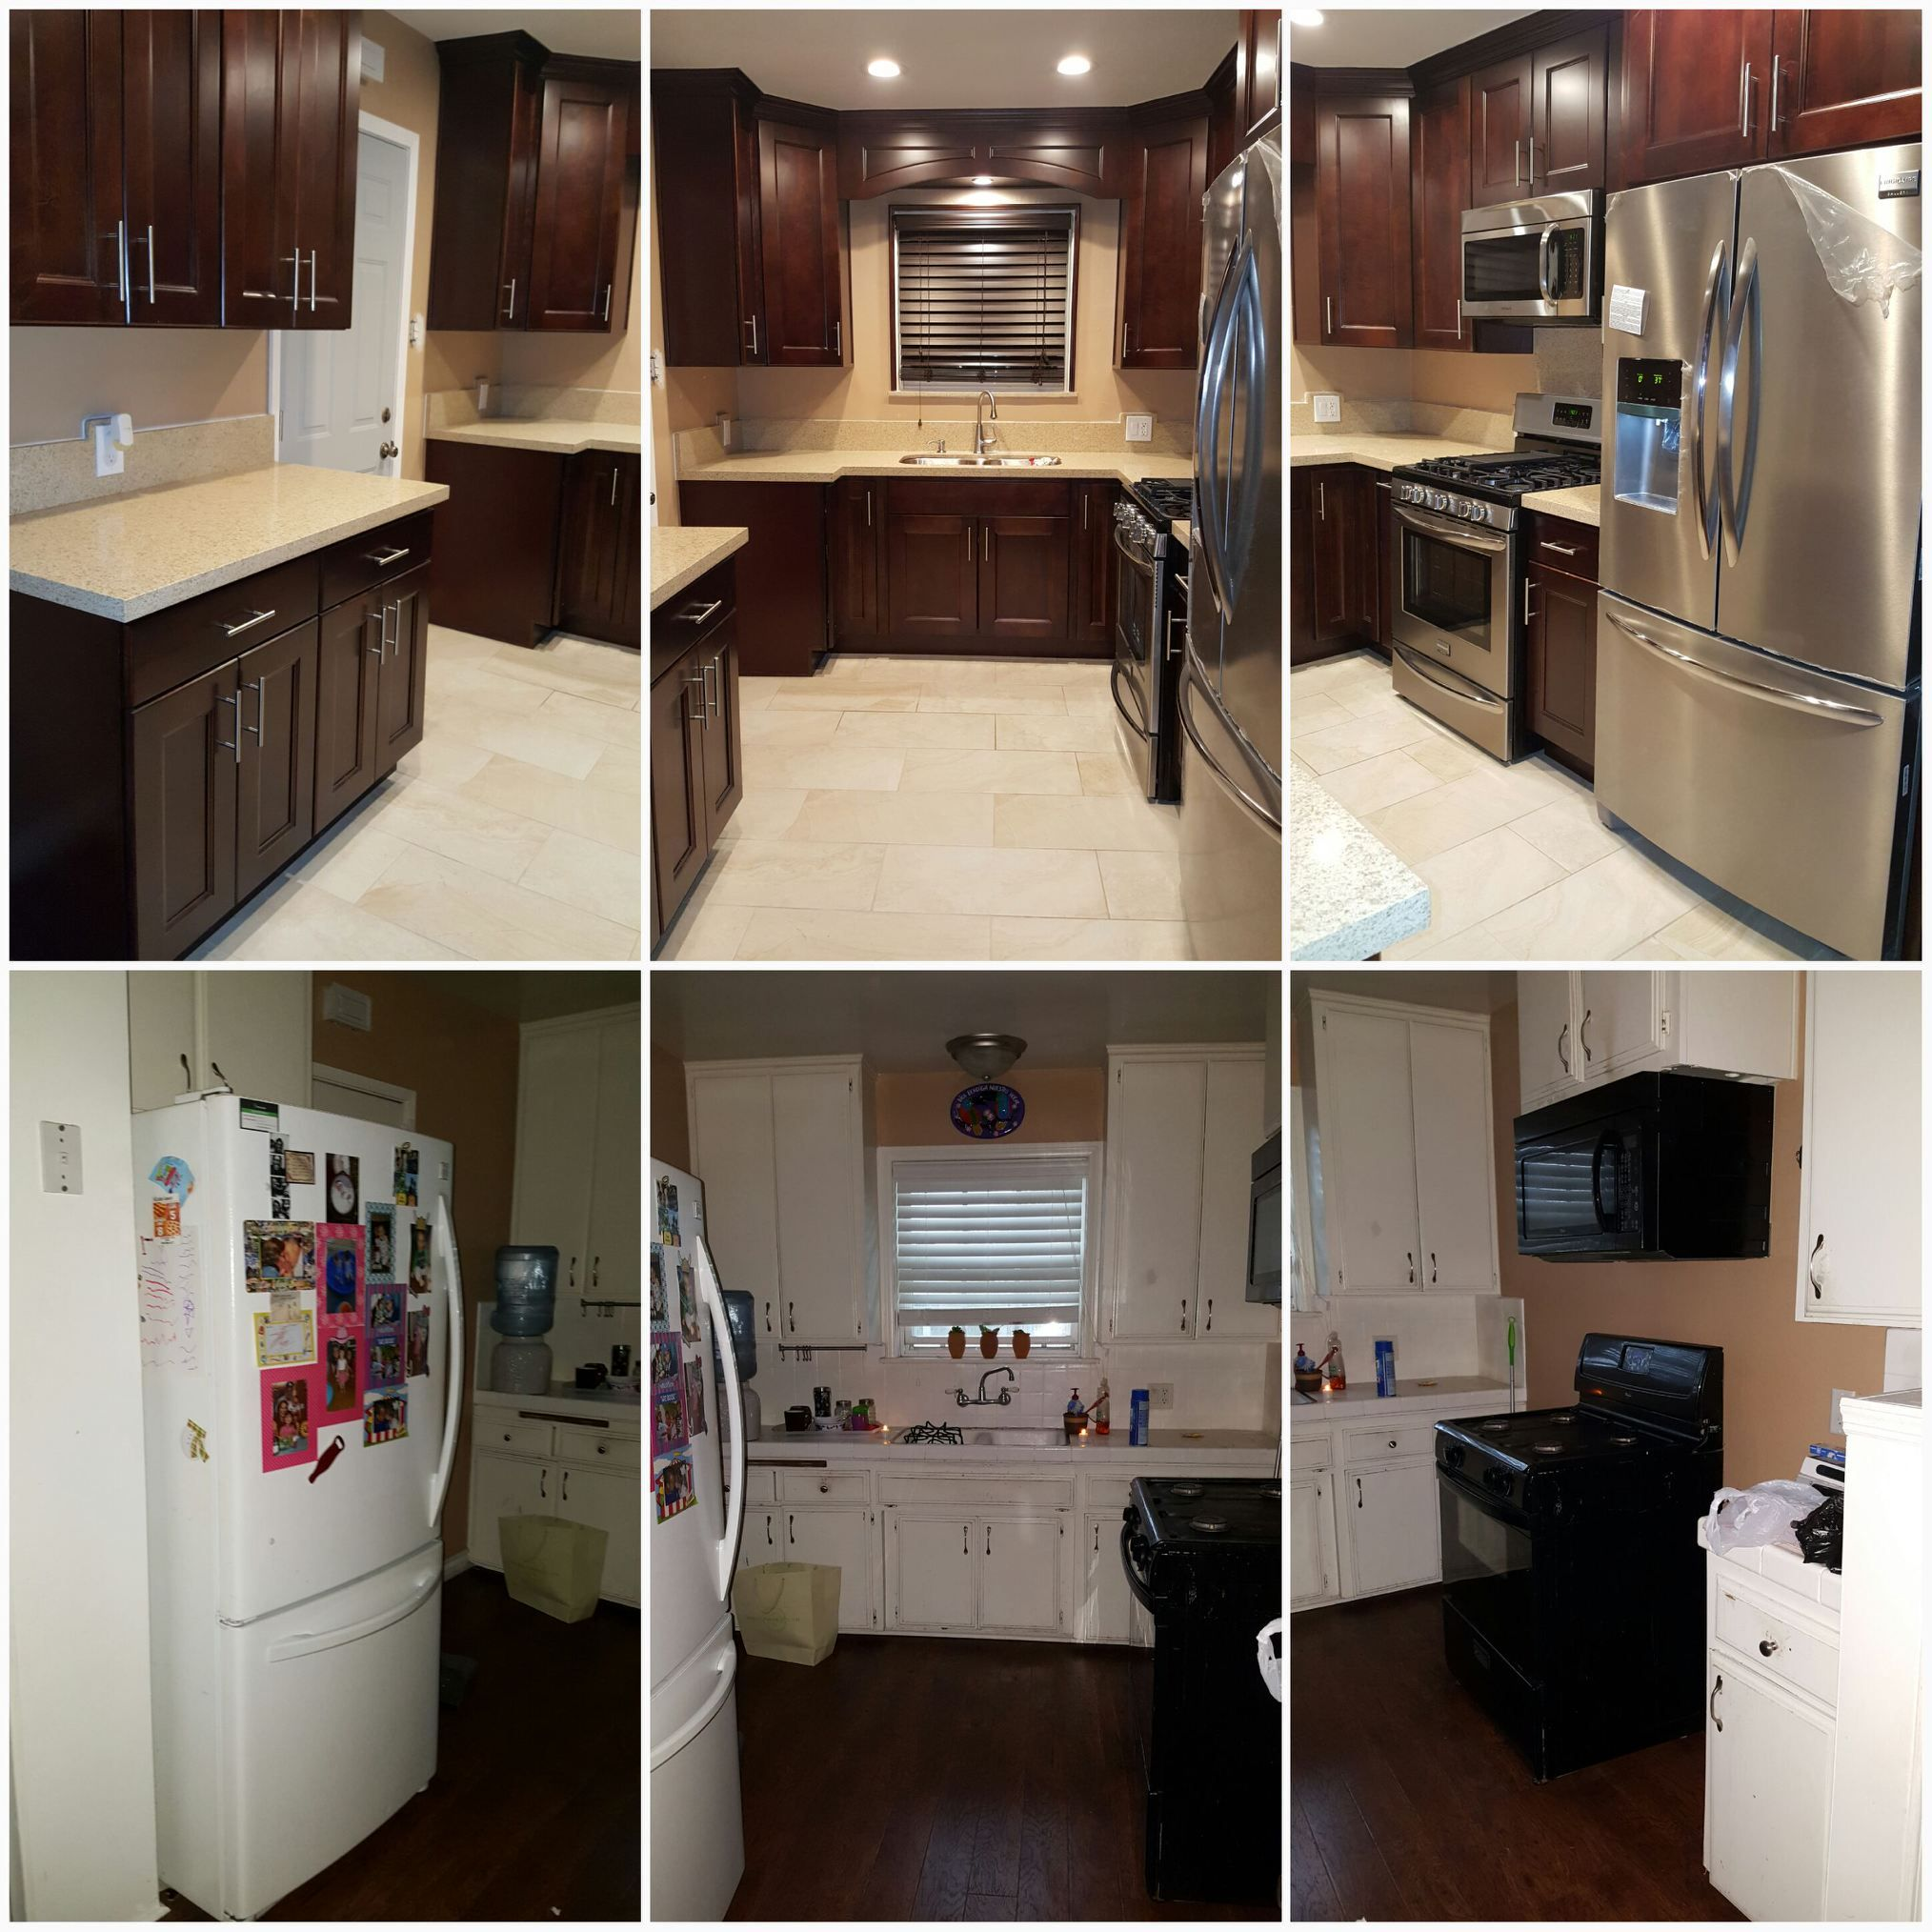 Pin By Erica Medina On Kitchen Remodels Ideas Kitchen Remodel Kitchen Cabinets Home Decor